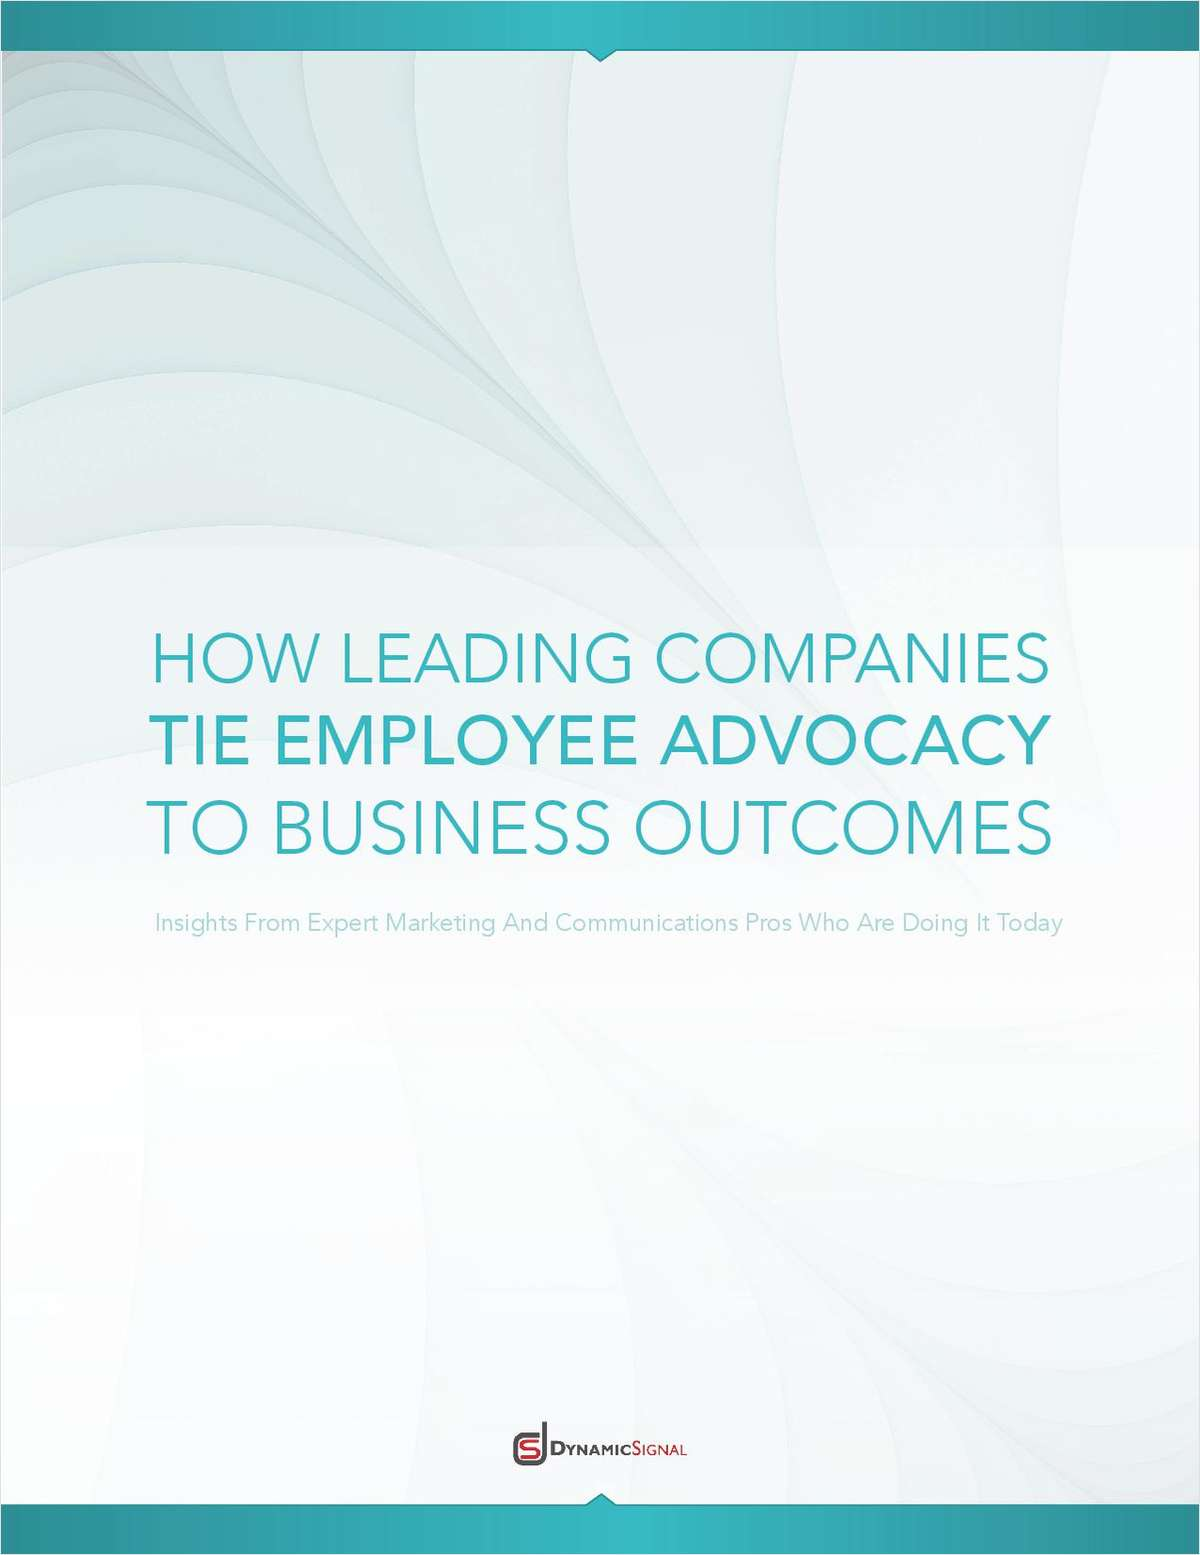 Learn How Leading Companies Tie Employee Advocacy to Business Outcomes